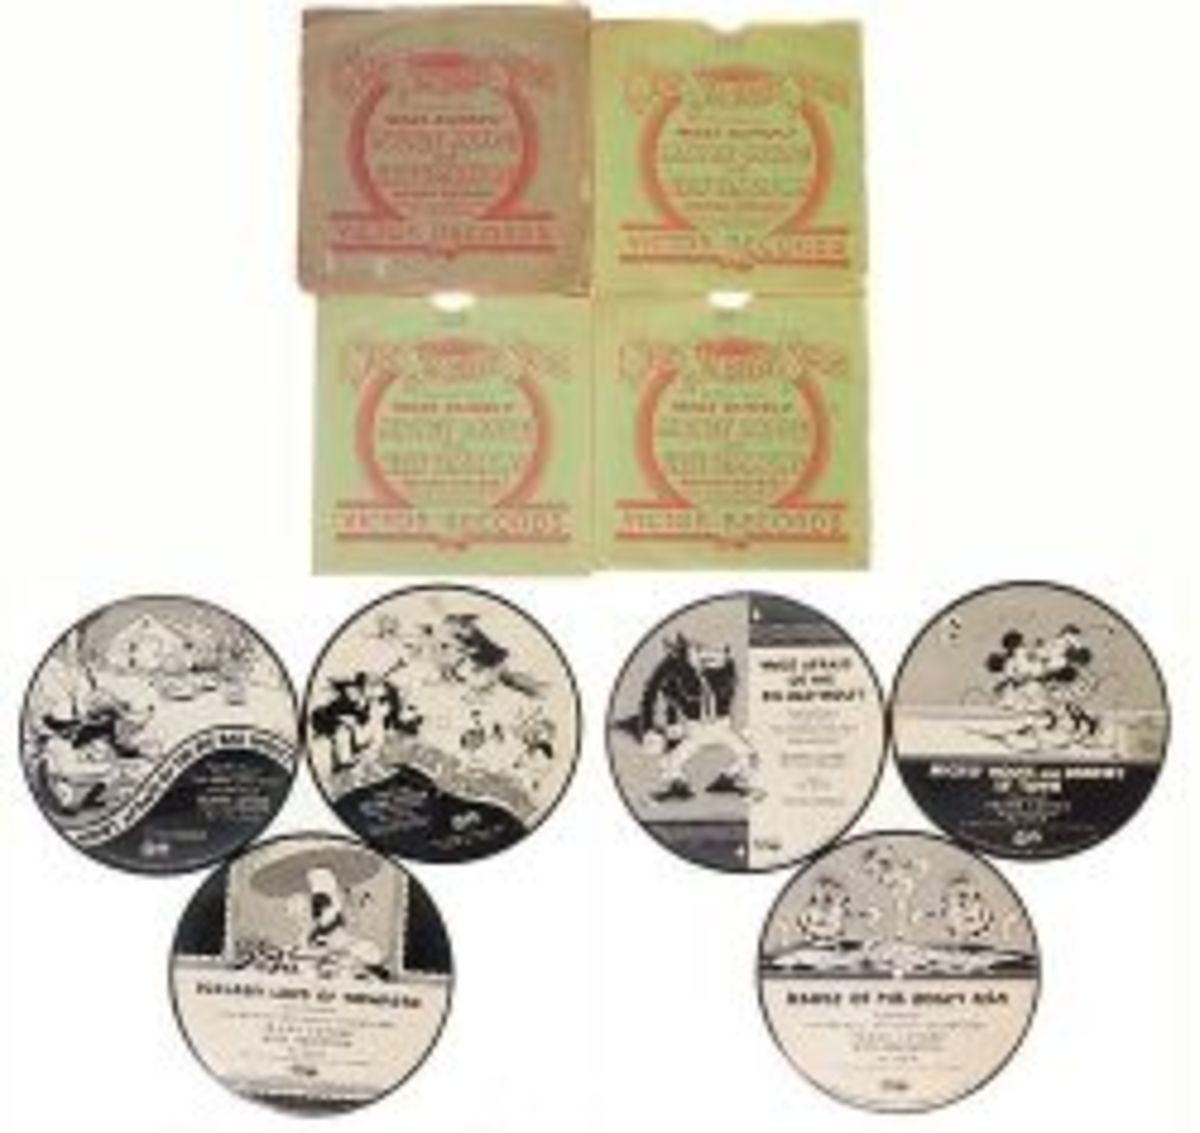 In a Silly Symphony 1934 RCA Victor Records